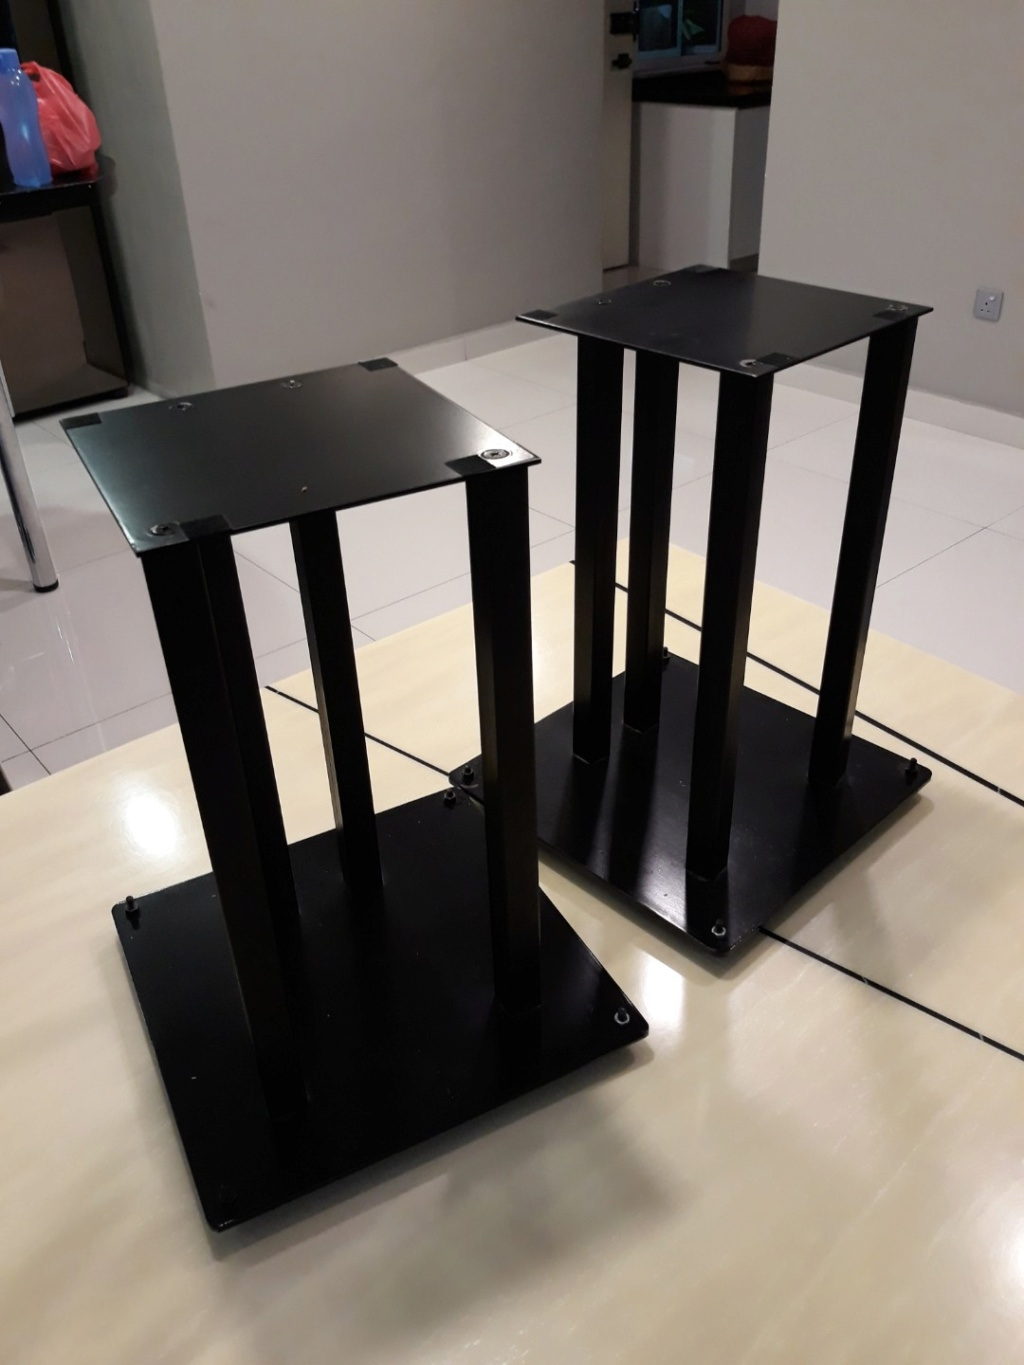 Heavy duty steel speaker stands.  Carous23